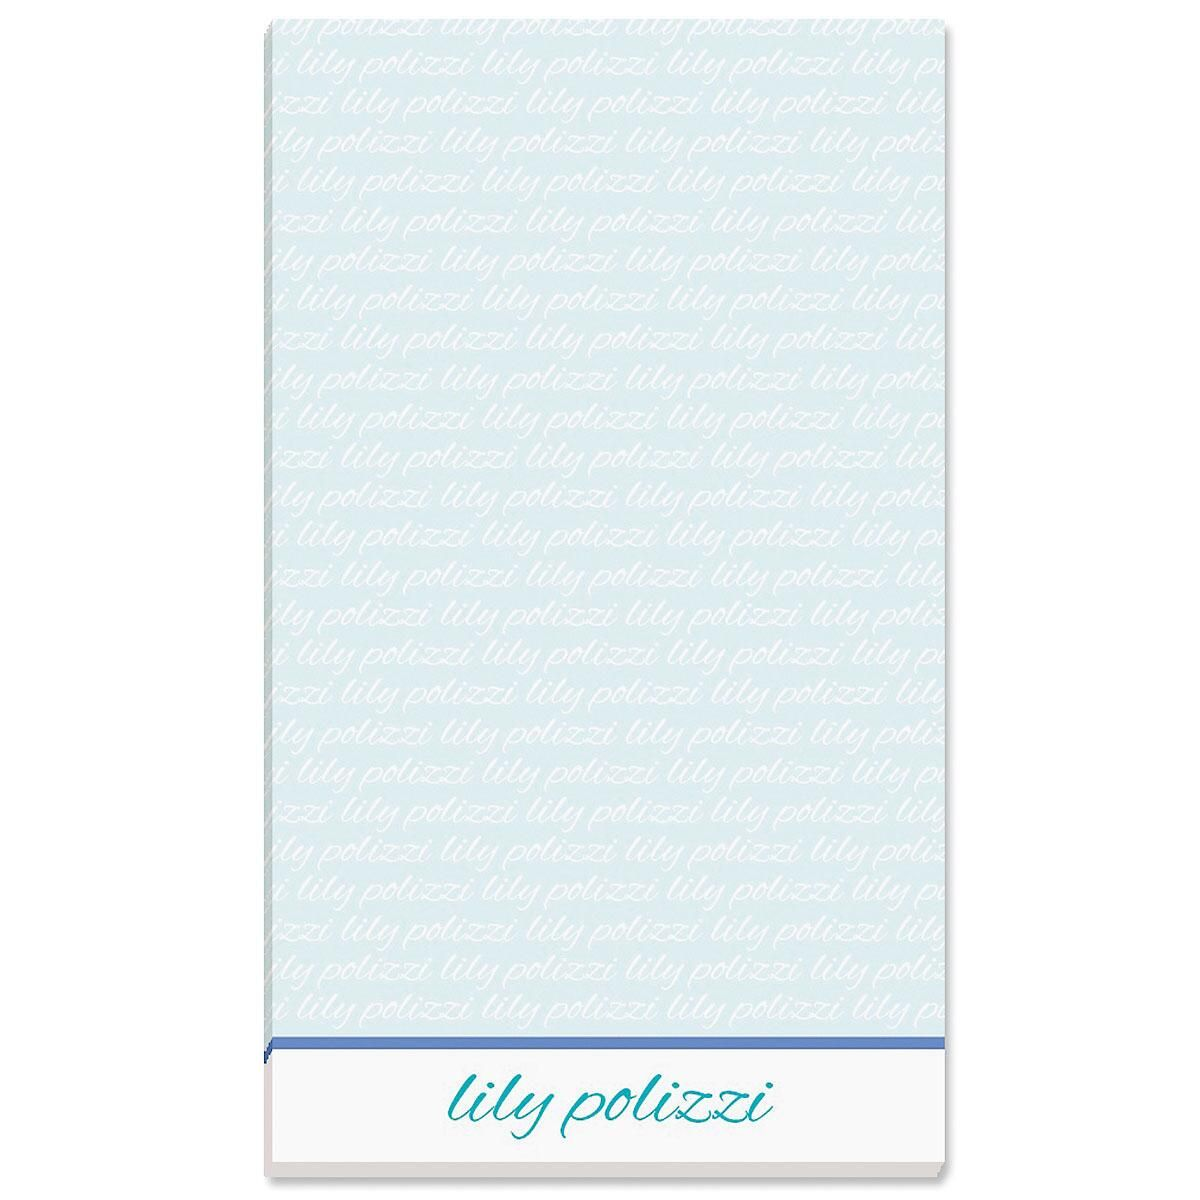 Signature Personalized Notepads